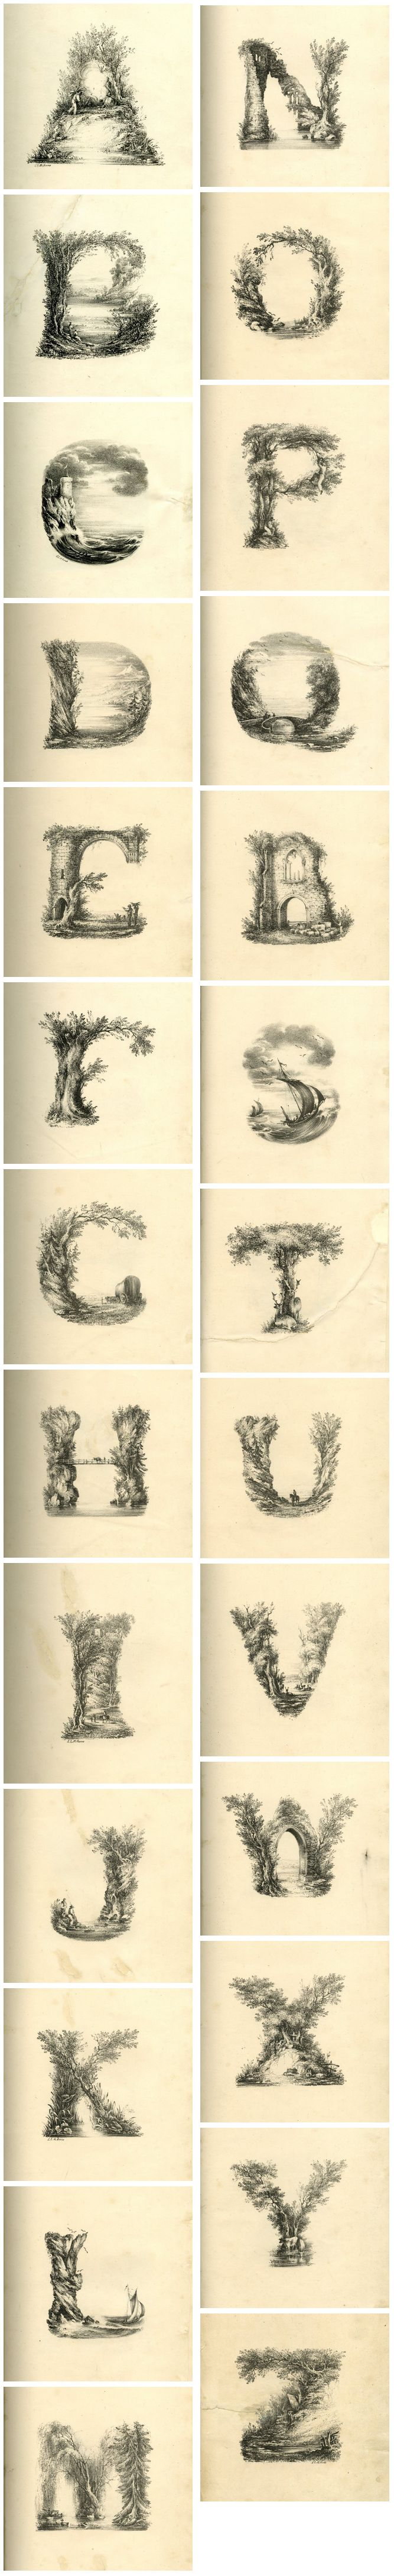 Landscapes Alphabet | 200 years ago, British artist L.E.M. Jones created a beautiful font inspired by nature which he called 'The Landscape Alphabet'  Sensual Calligraphy Scripts ✍ initials, typography styles and calligraphic art - Landscape alphabet, L.E.M. Jones, printed by Charles Joseph Hullmandel  http://www.typetoken.net/theory/the-landscape-alphabet-lithograph/